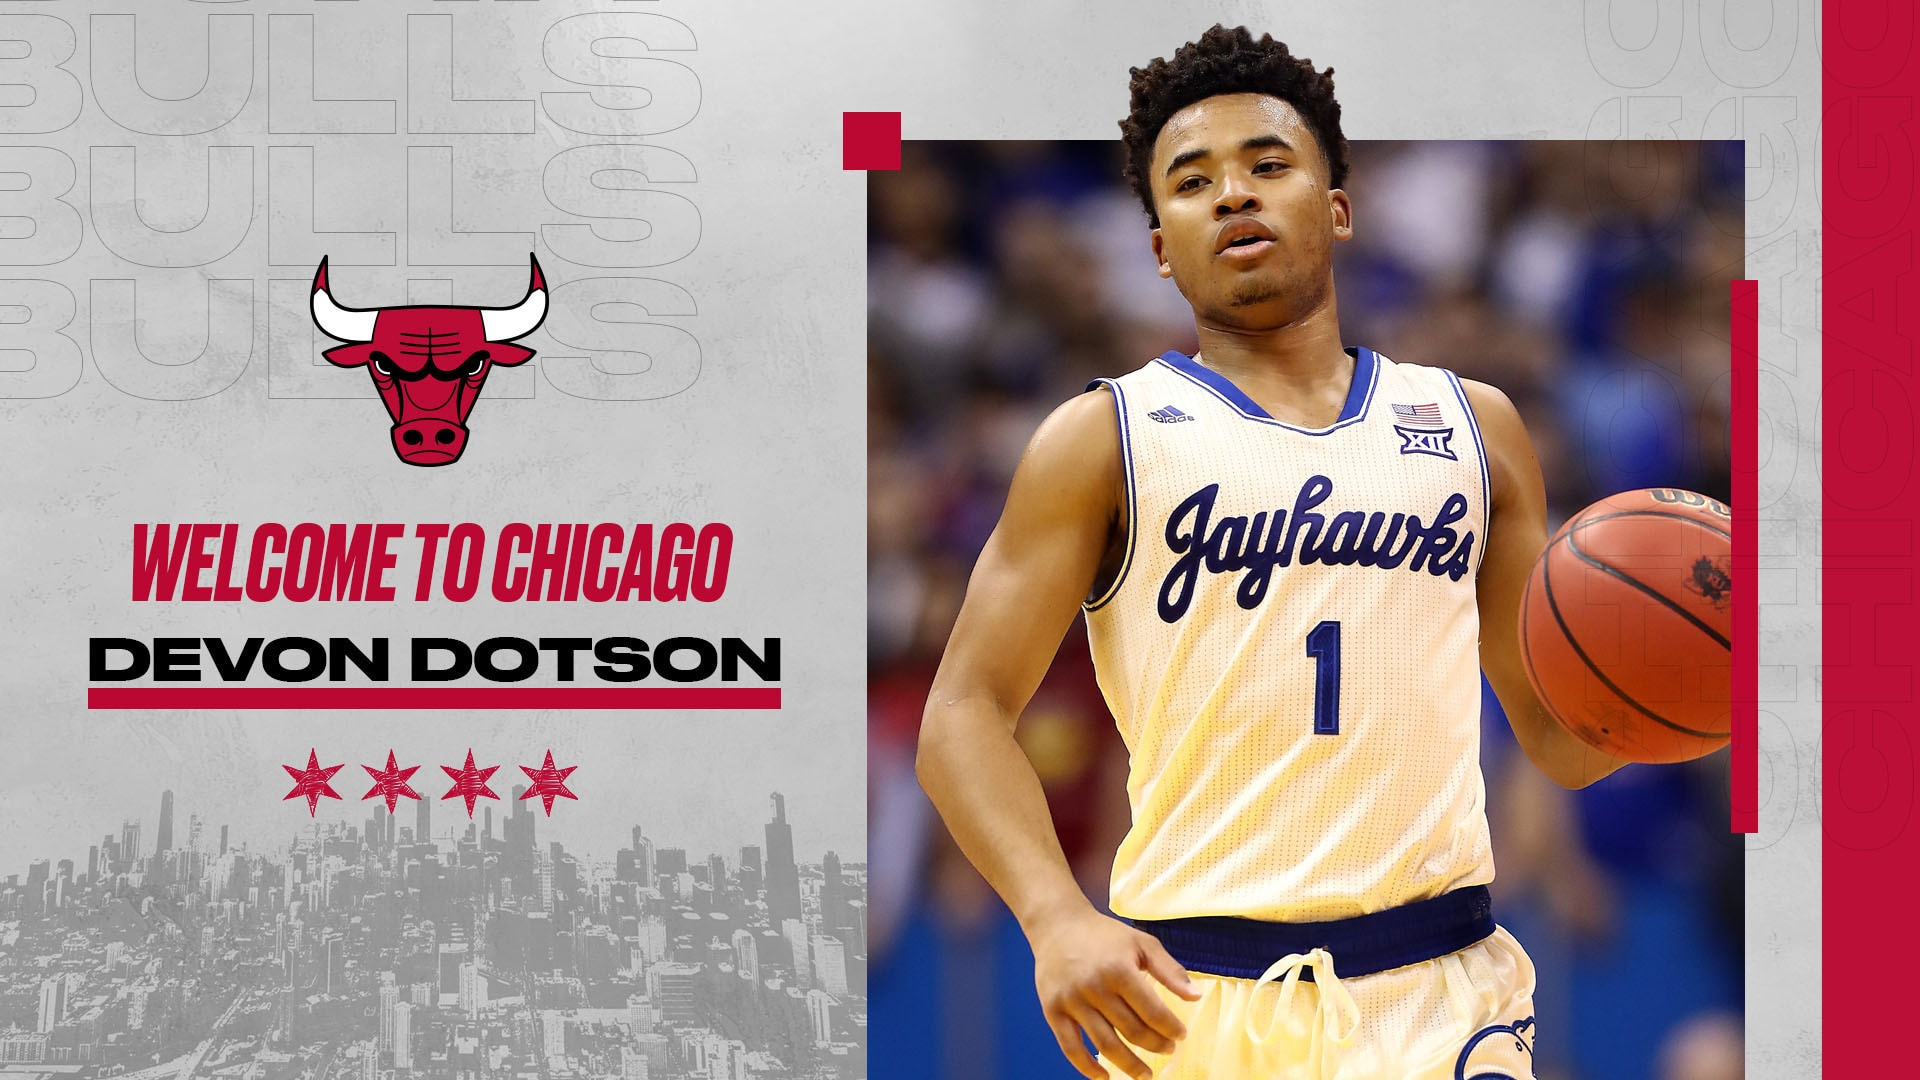 College Highlights: Chicago Bulls two-way player Devon Dotson